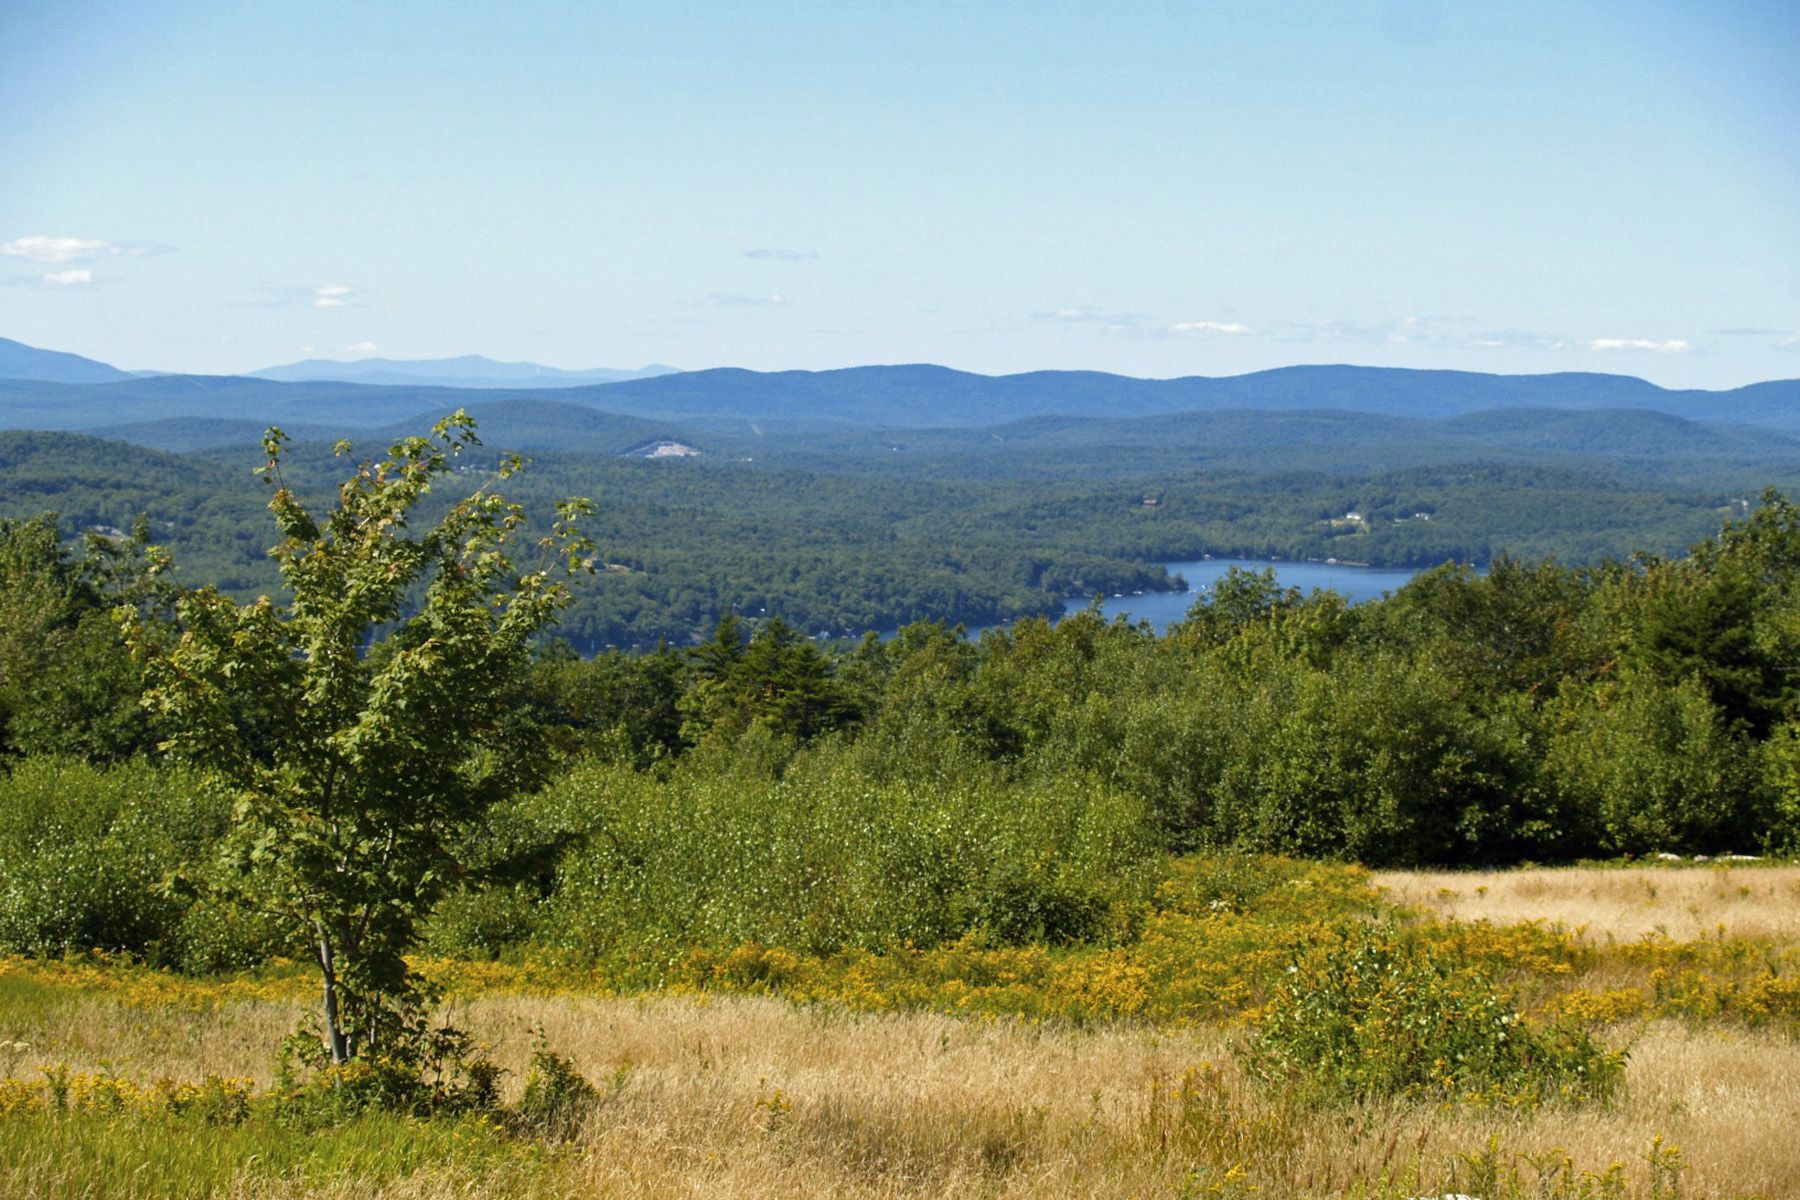 Terreno por un Venta en Amazing Views of Lake and Mountians High Meadow Rd Newbury, Nueva Hampshire 03255 Estados Unidos